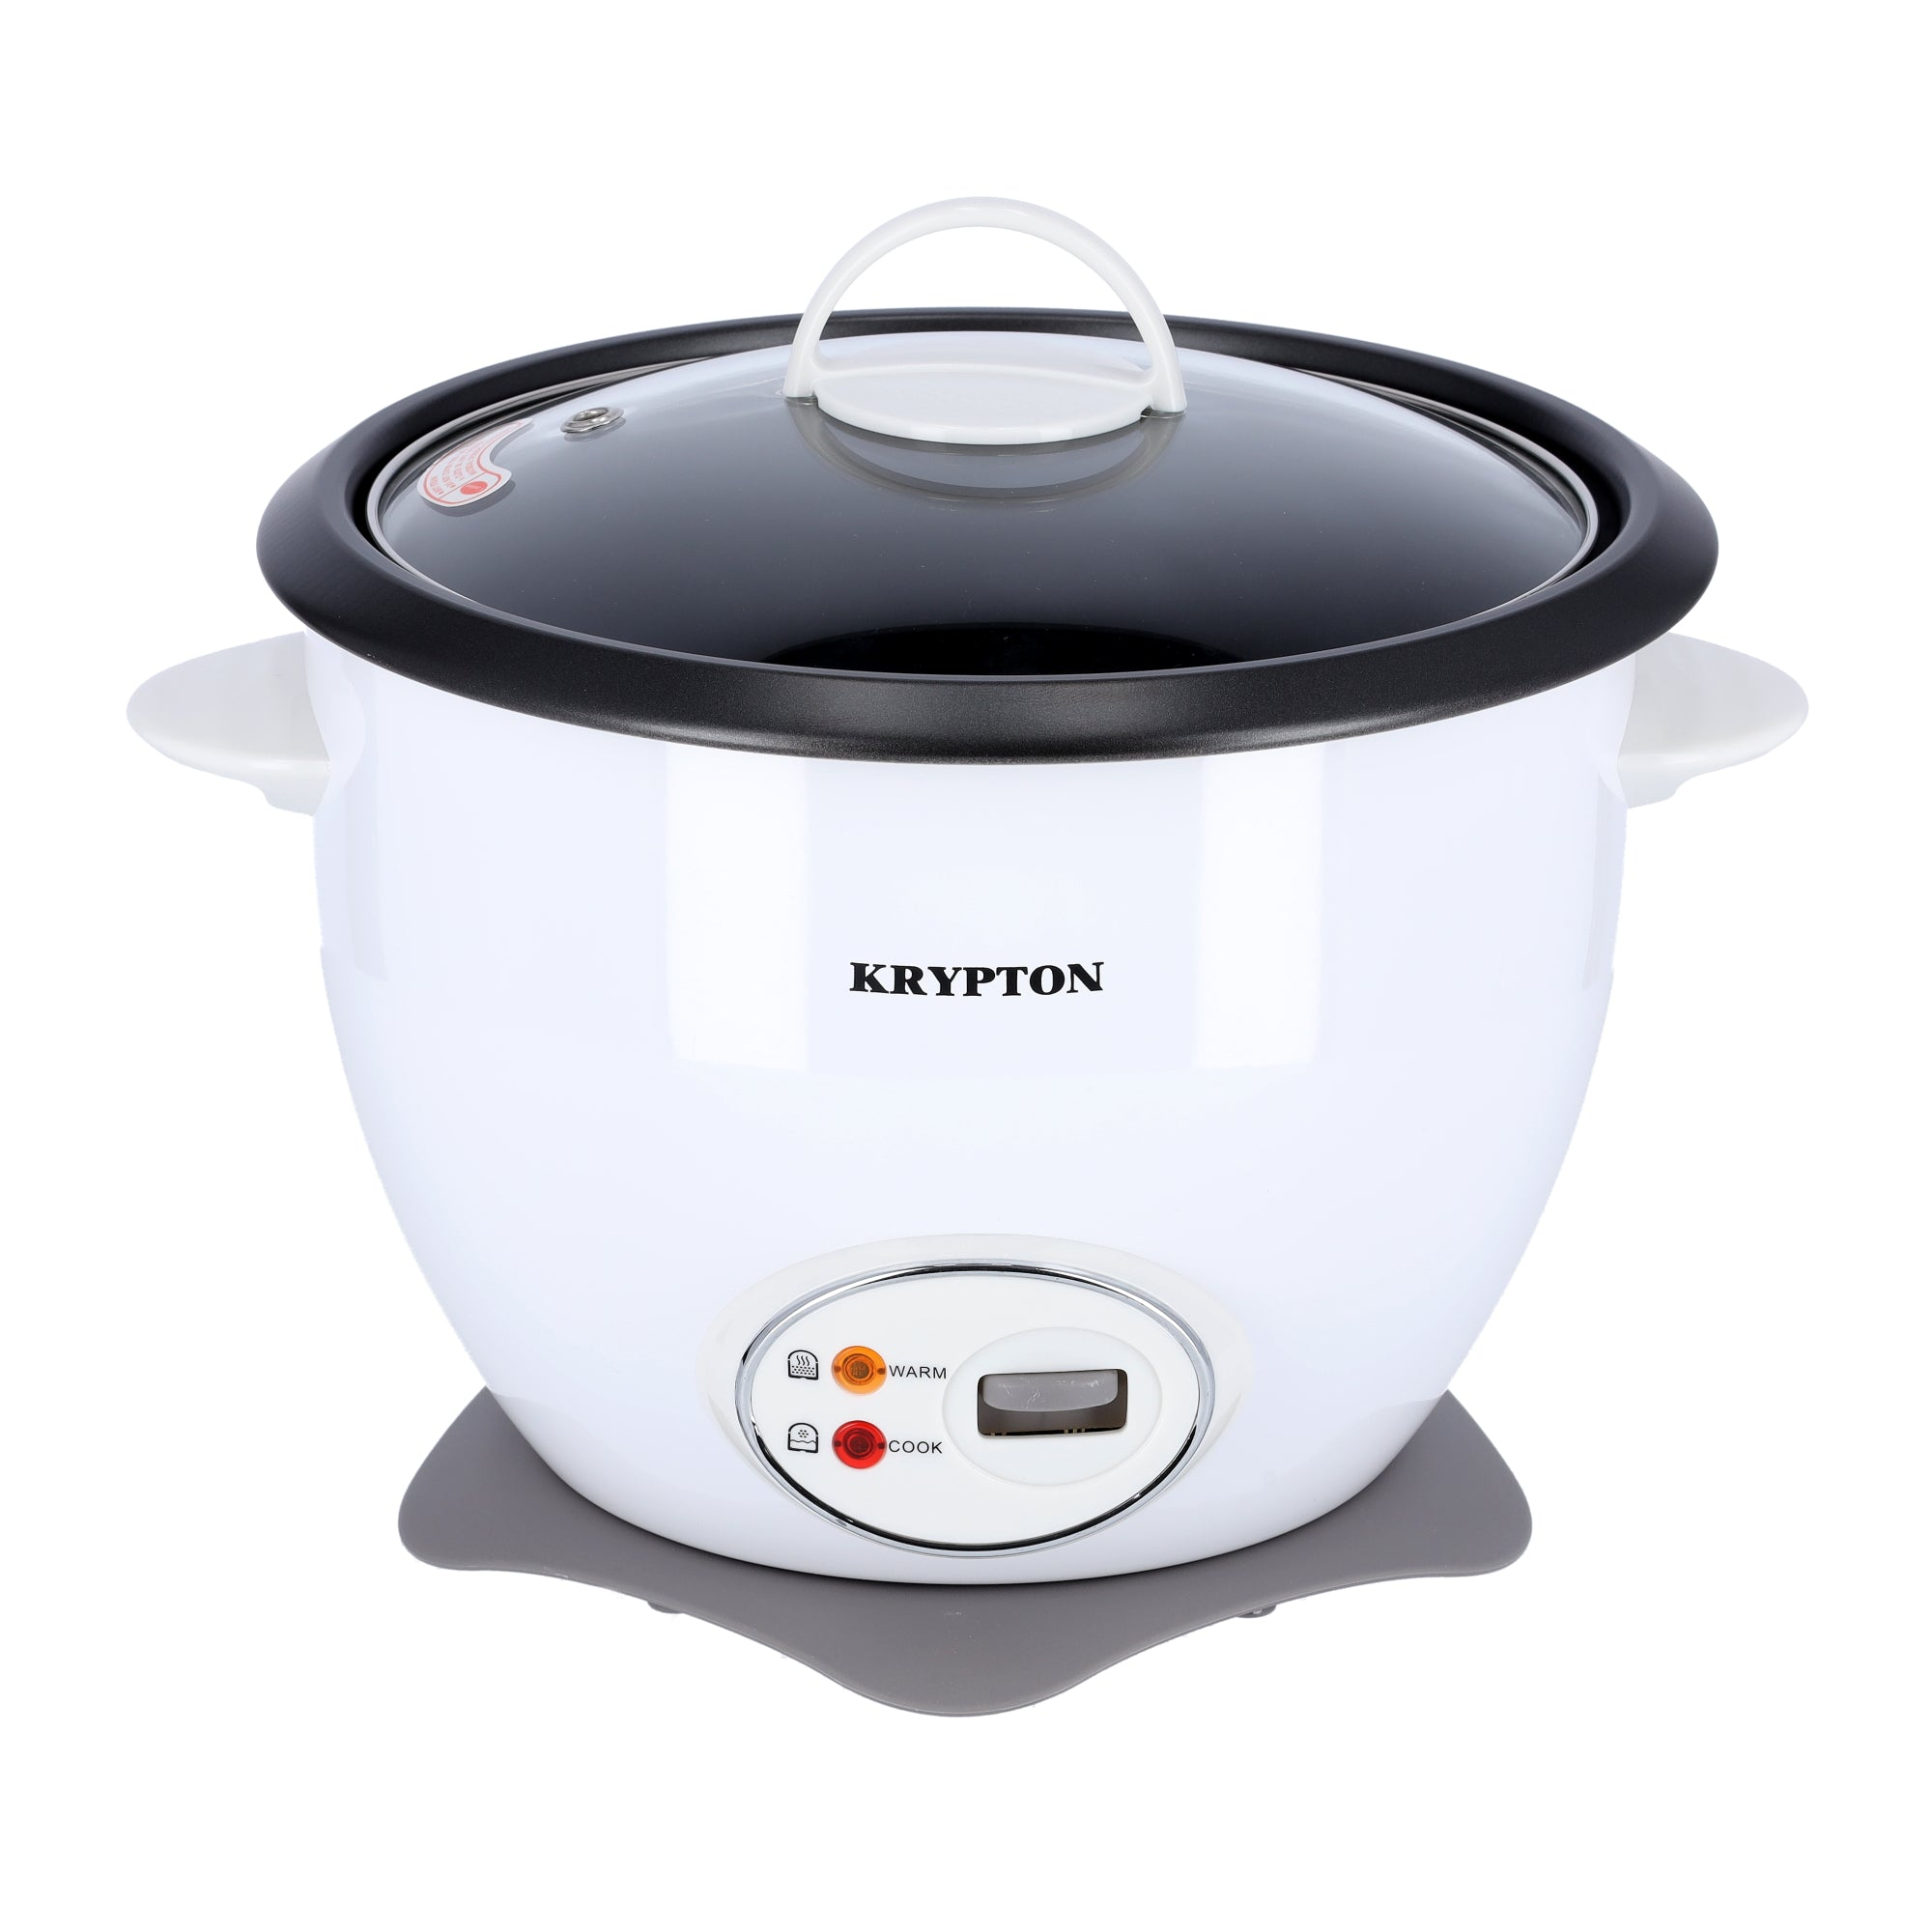 700W 1.8 L Rice Cooker with Steamer | Non-Stick Inner Pot, Automatic Cooking, Easy Cleaning, High-Temperature Protection - Make Rice & Steam Healthy Food & Vegetables